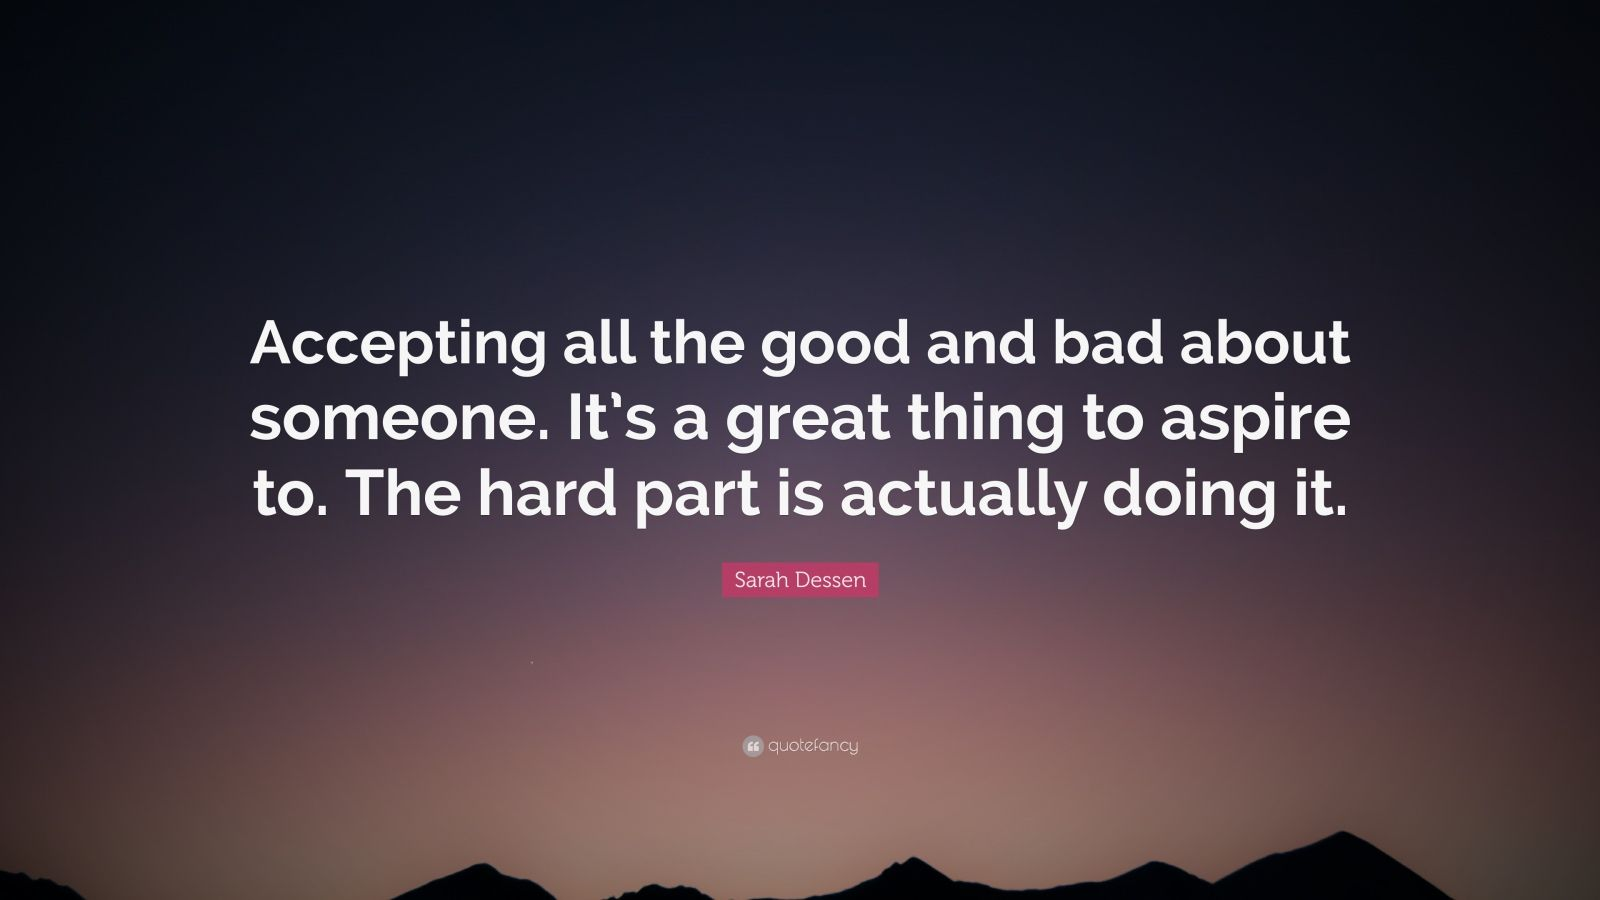 """Sarah Dessen Quote: """"Accepting all the good and bad about someone. It's a great thing to aspire to. The hard part is actually doing it."""""""